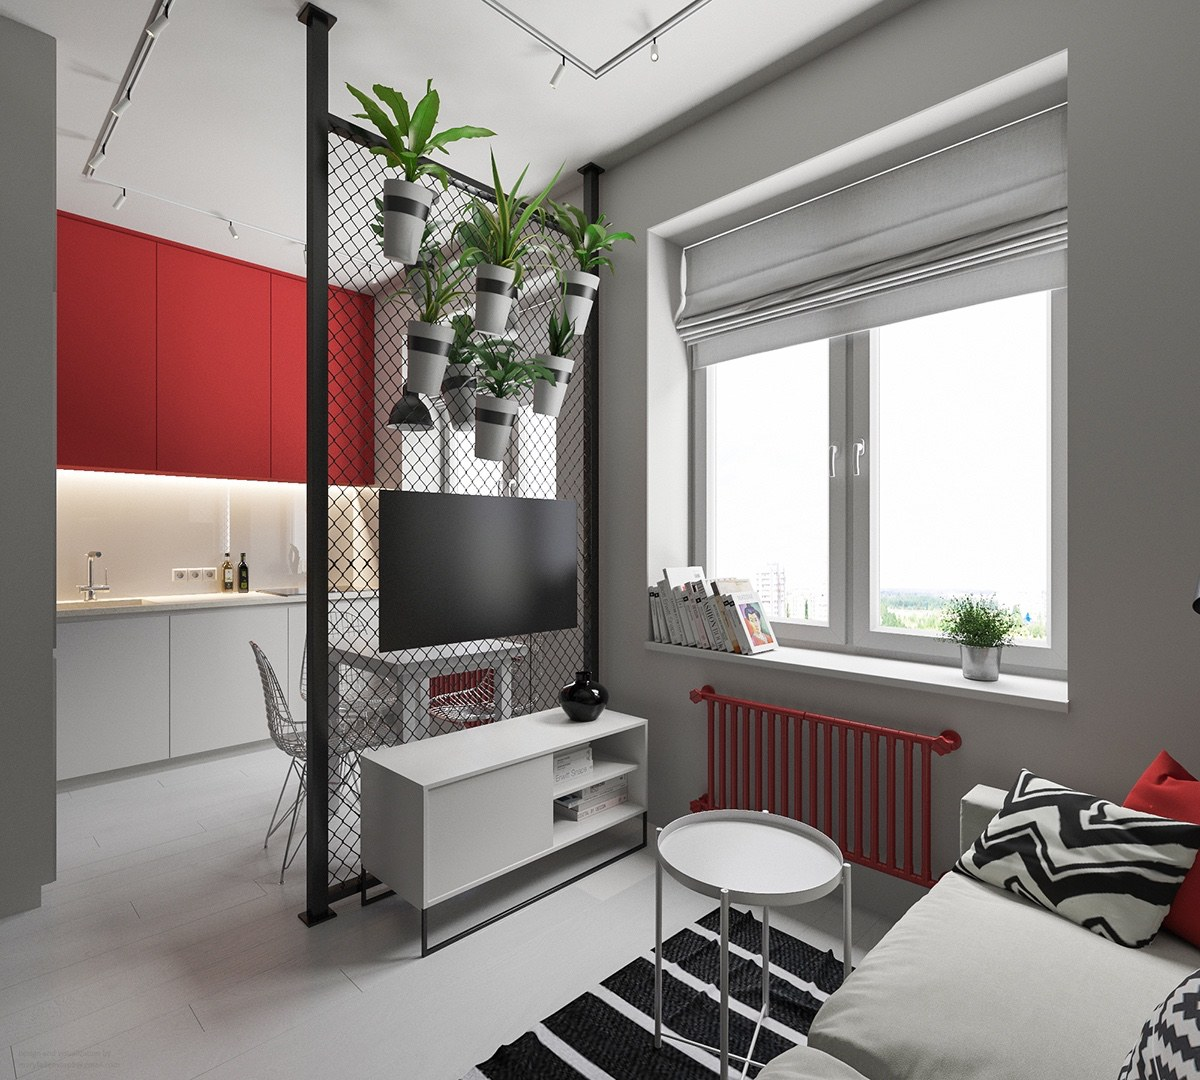 Chic Apartment With Industrial Accents - 3 small apartments that rock uncommon color schemes with floor plans